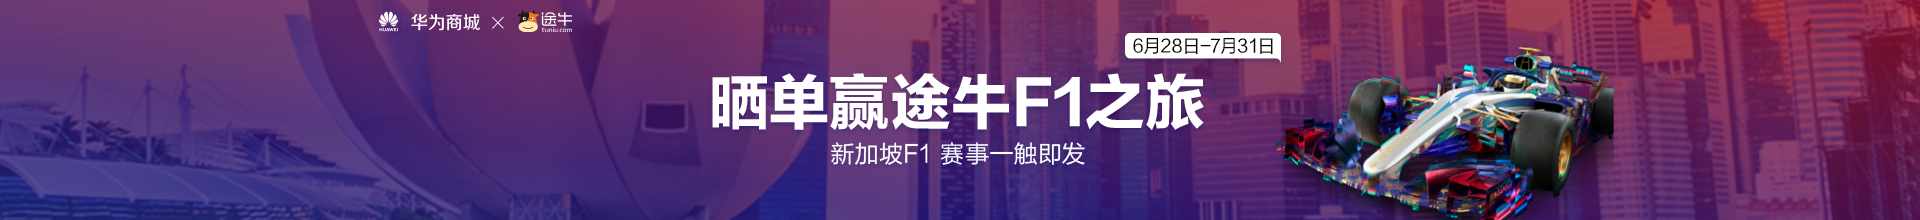 banner-pc途牛.png